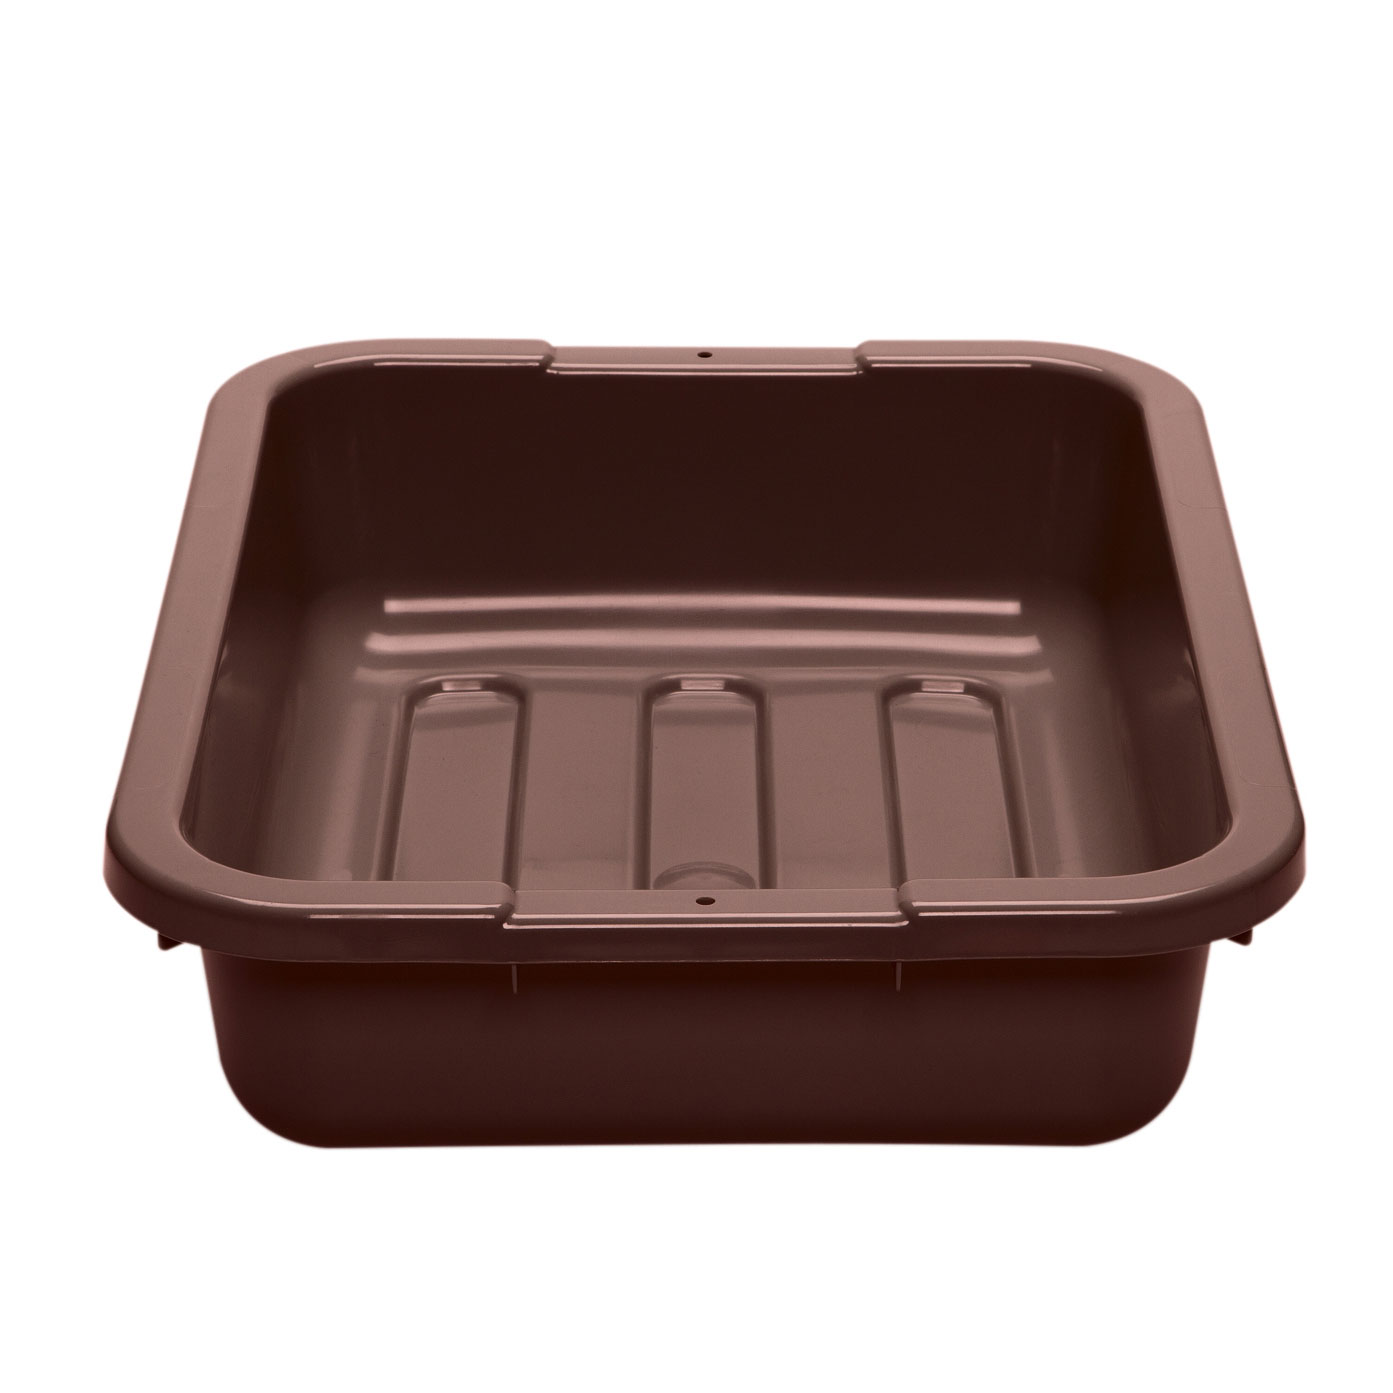 Cambro 1520CBP131 food/beverage storage container